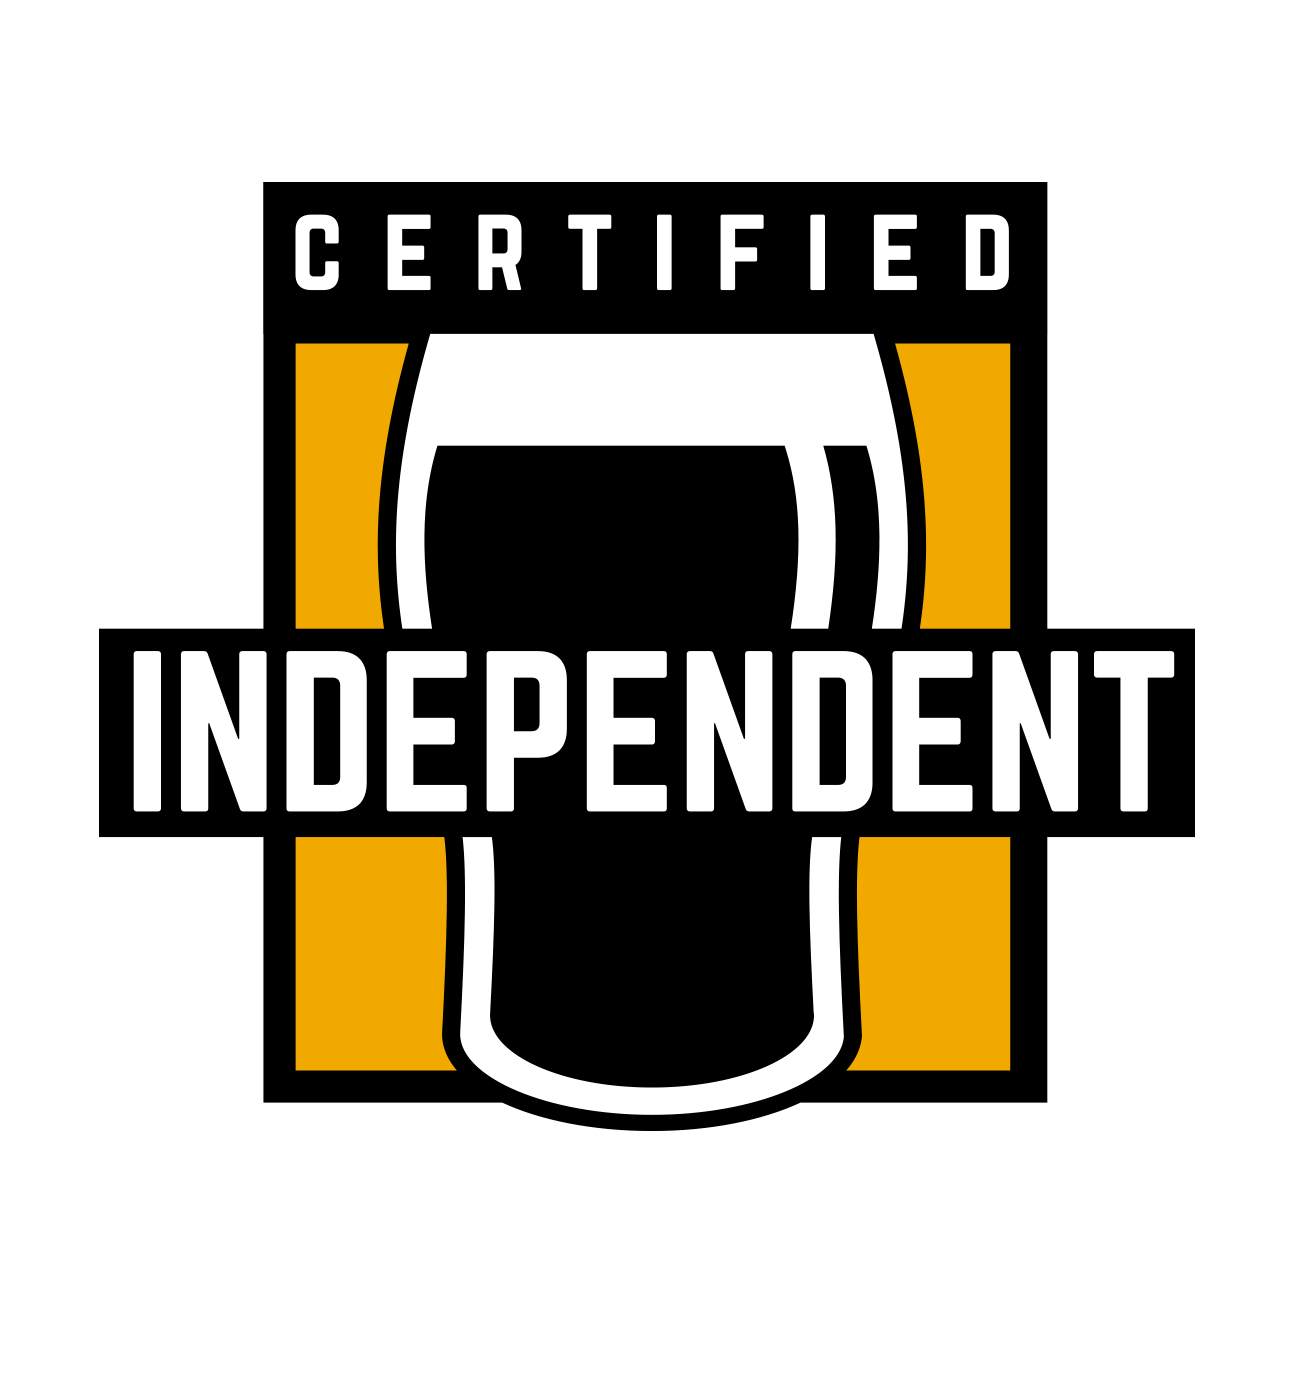 https://www.redduckbeer.com.au/wp-content/uploads/2020/10/Indie_Beer_Seal_RGB_Black.png